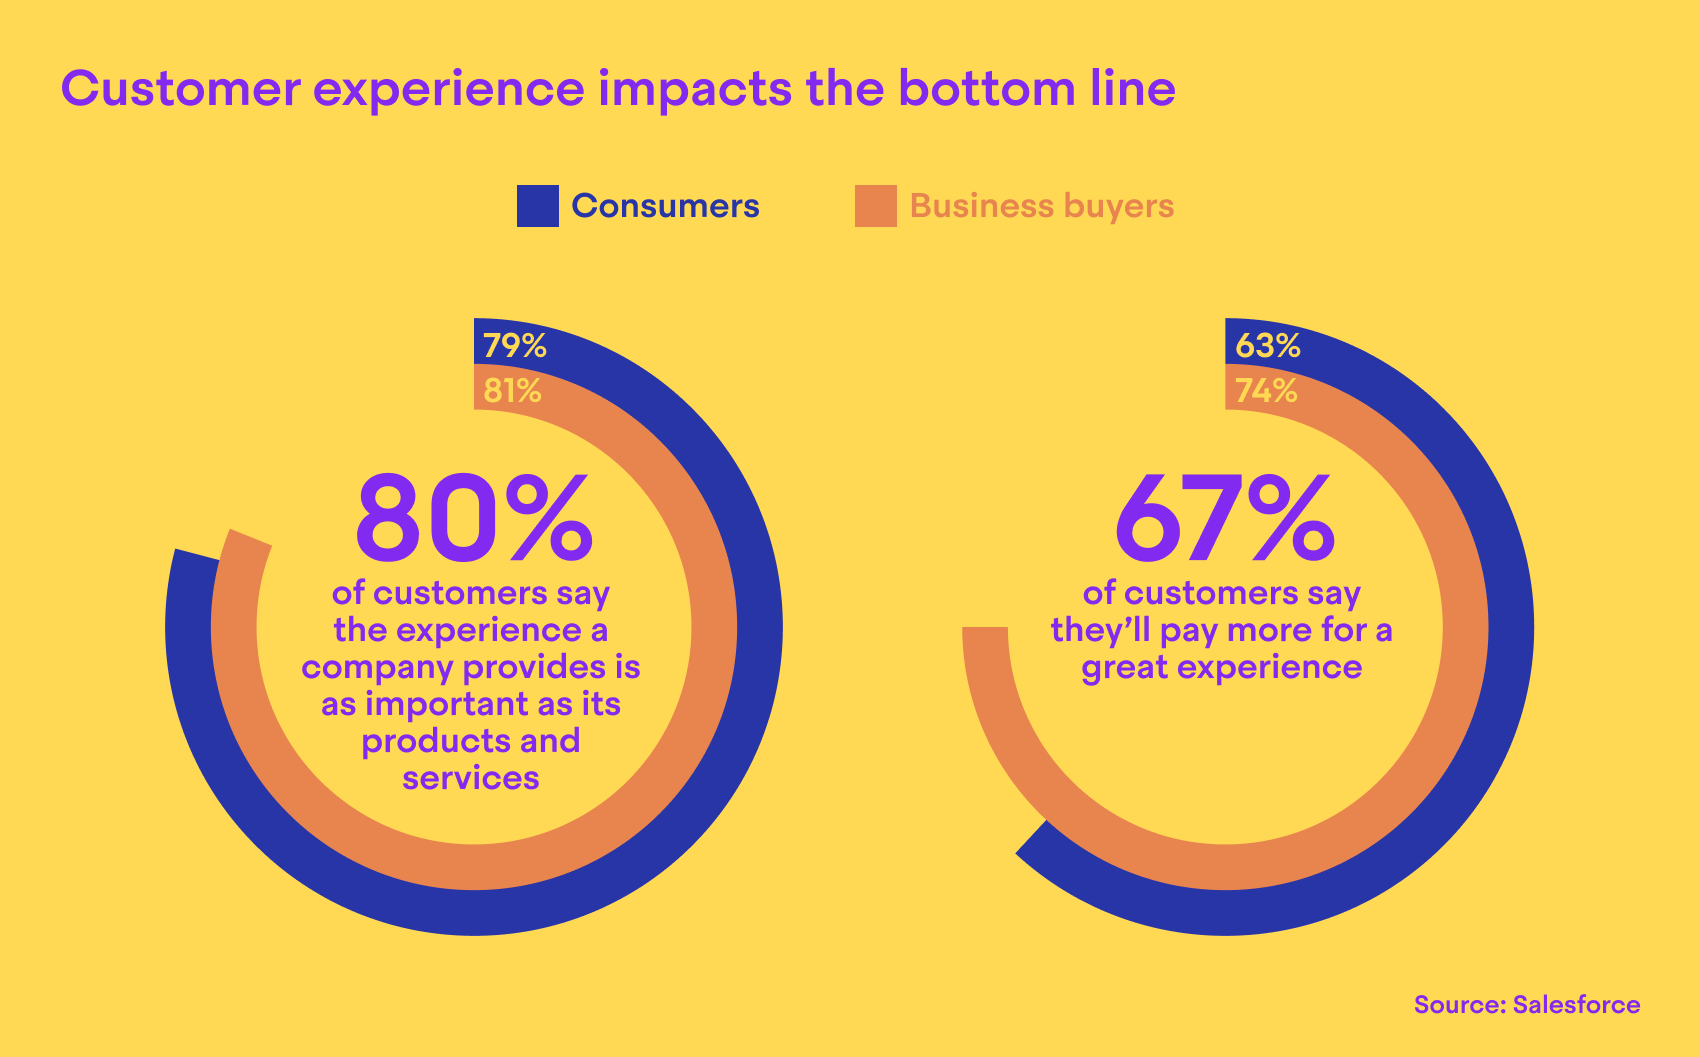 Customer experience impacts the bottom line